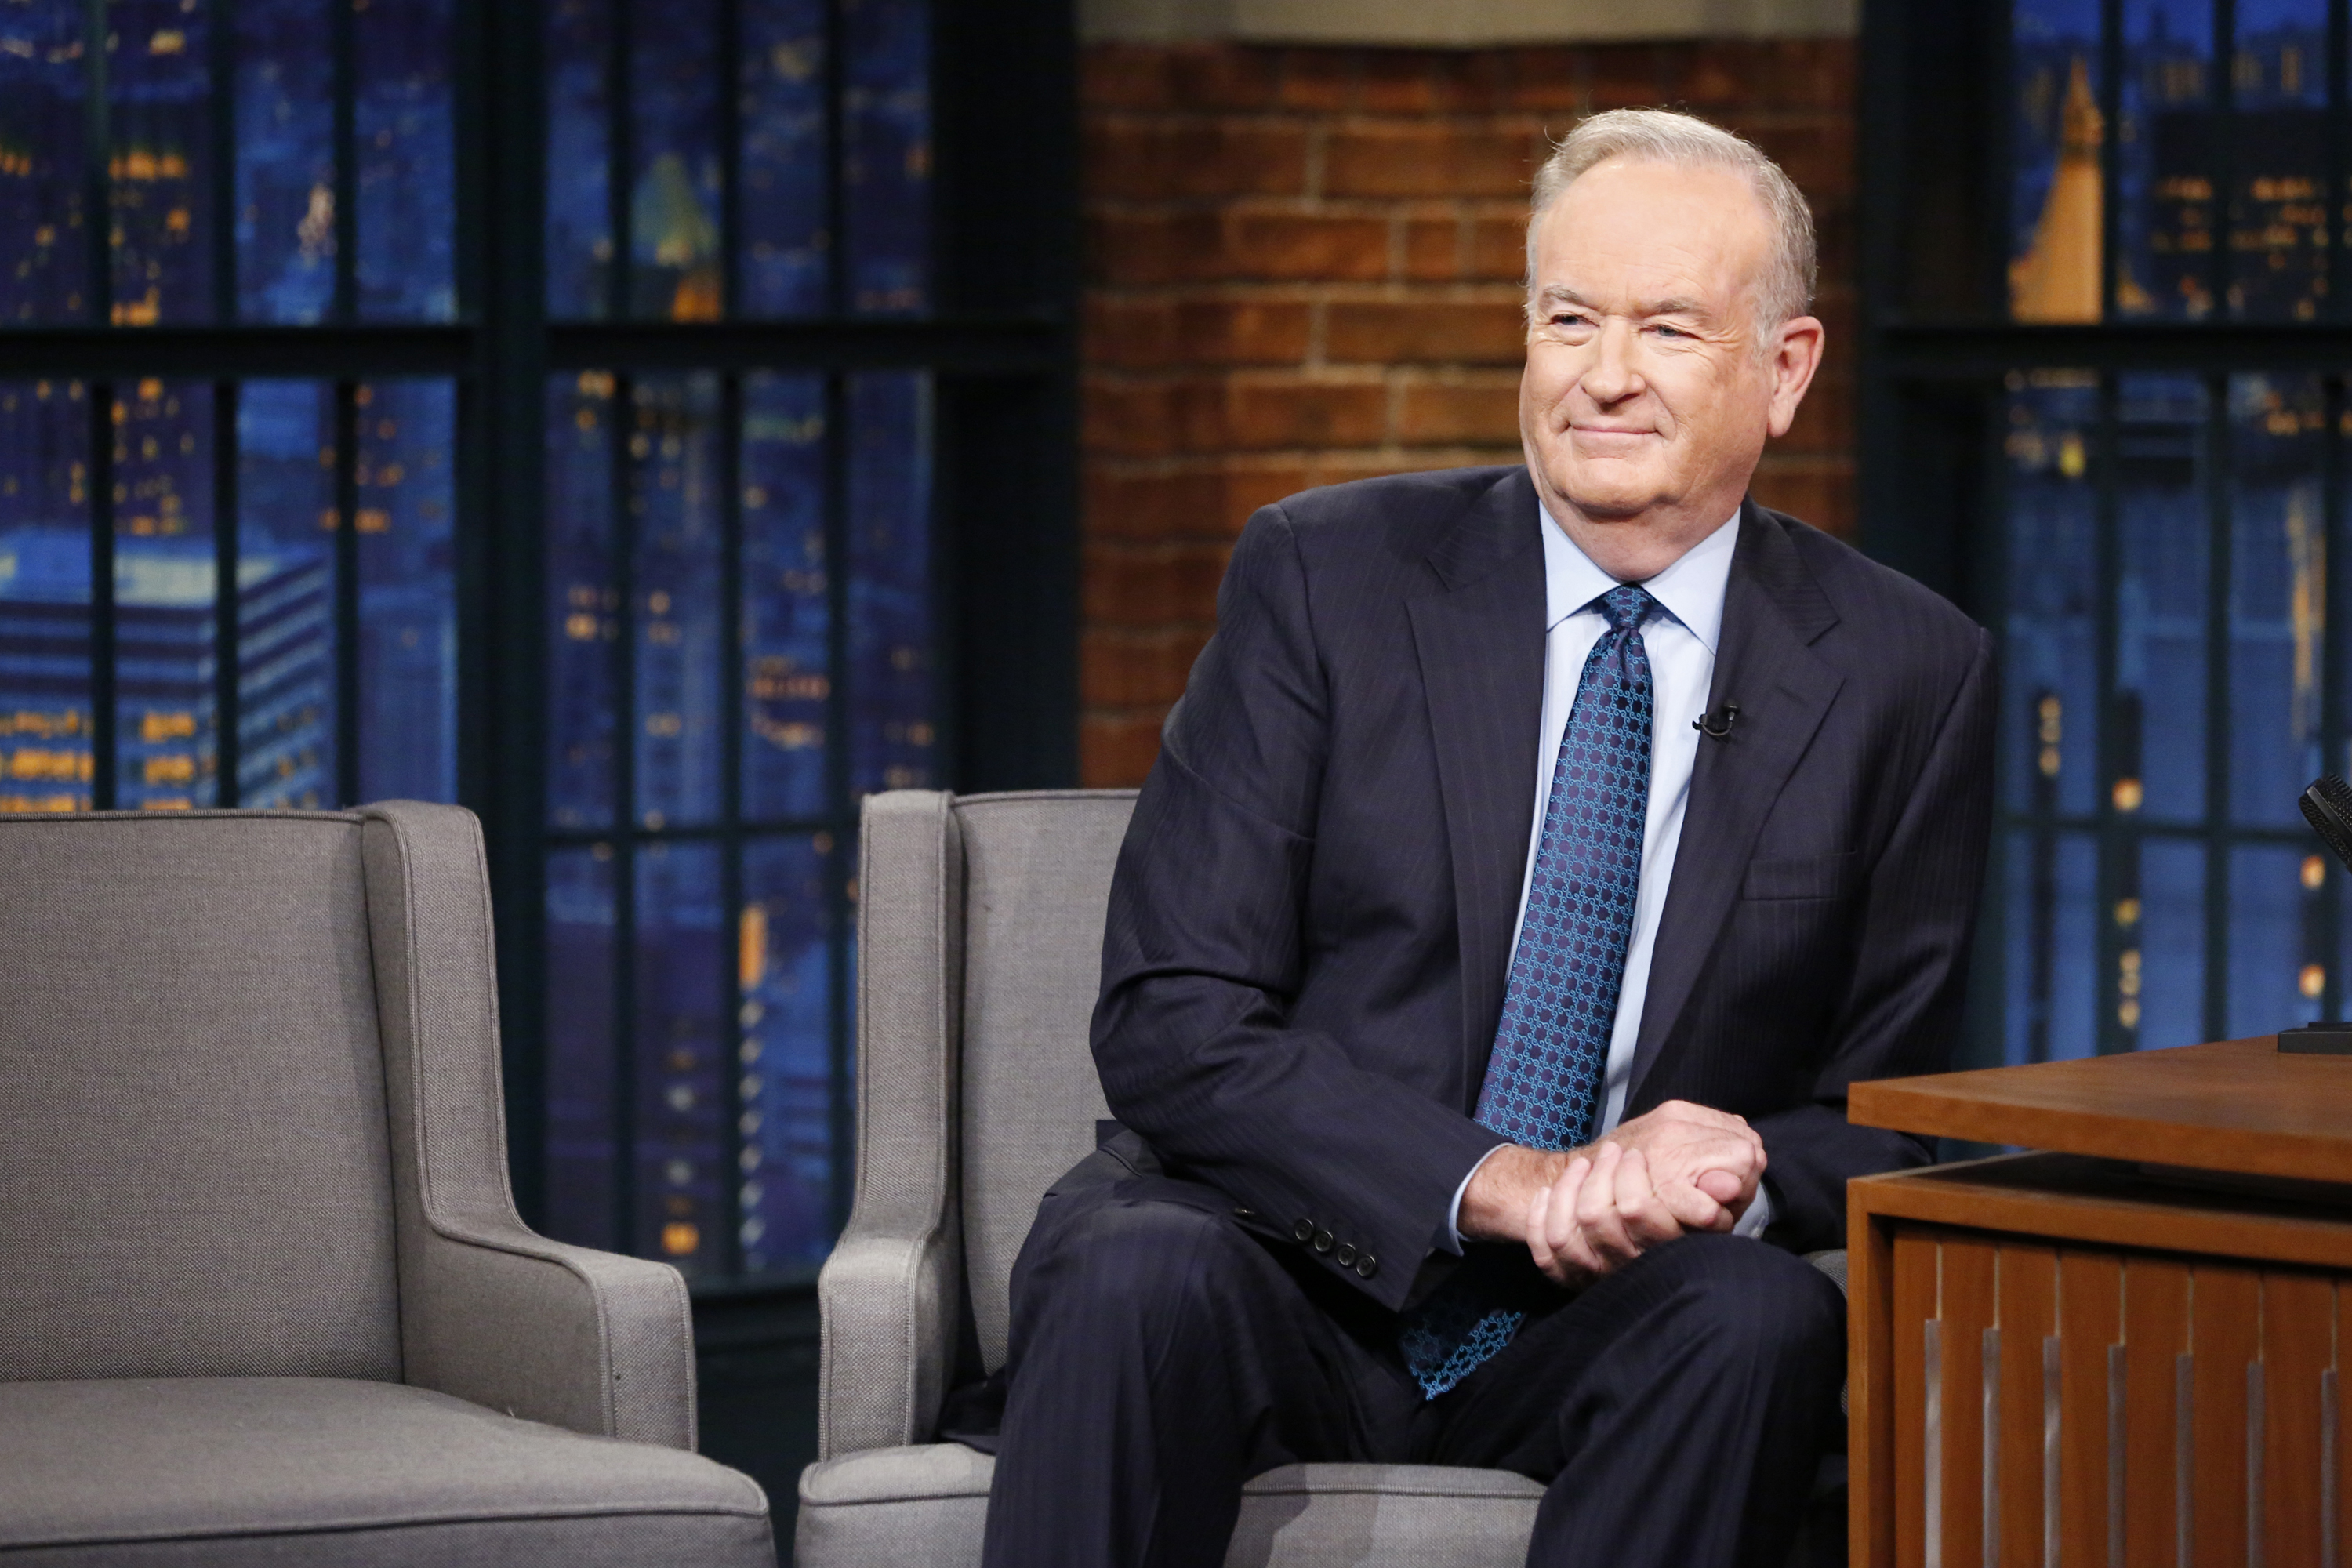 Political commentator, Bill O'Reilly, during an interview on July 13, 2016